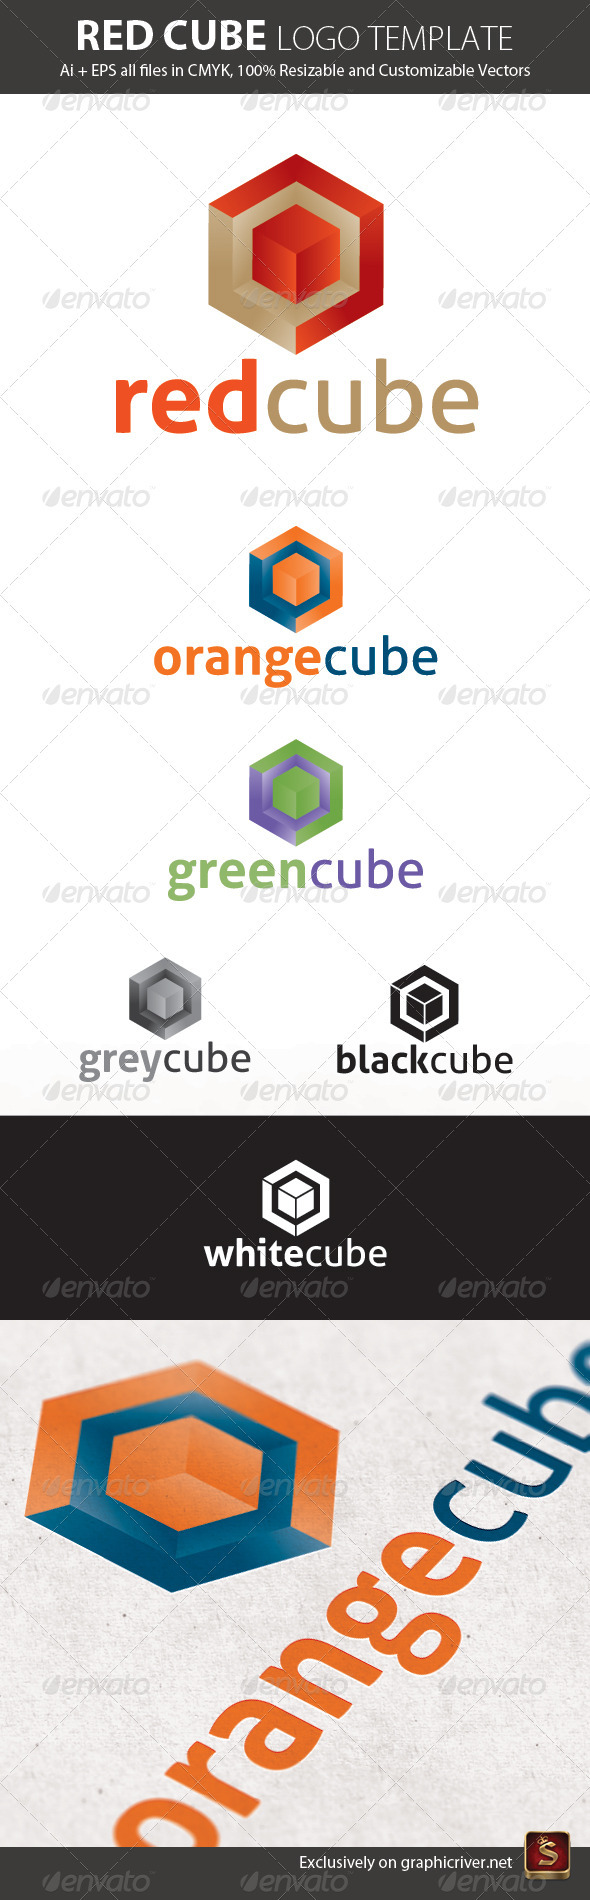 Red Cube Logo Template - Vector Abstract